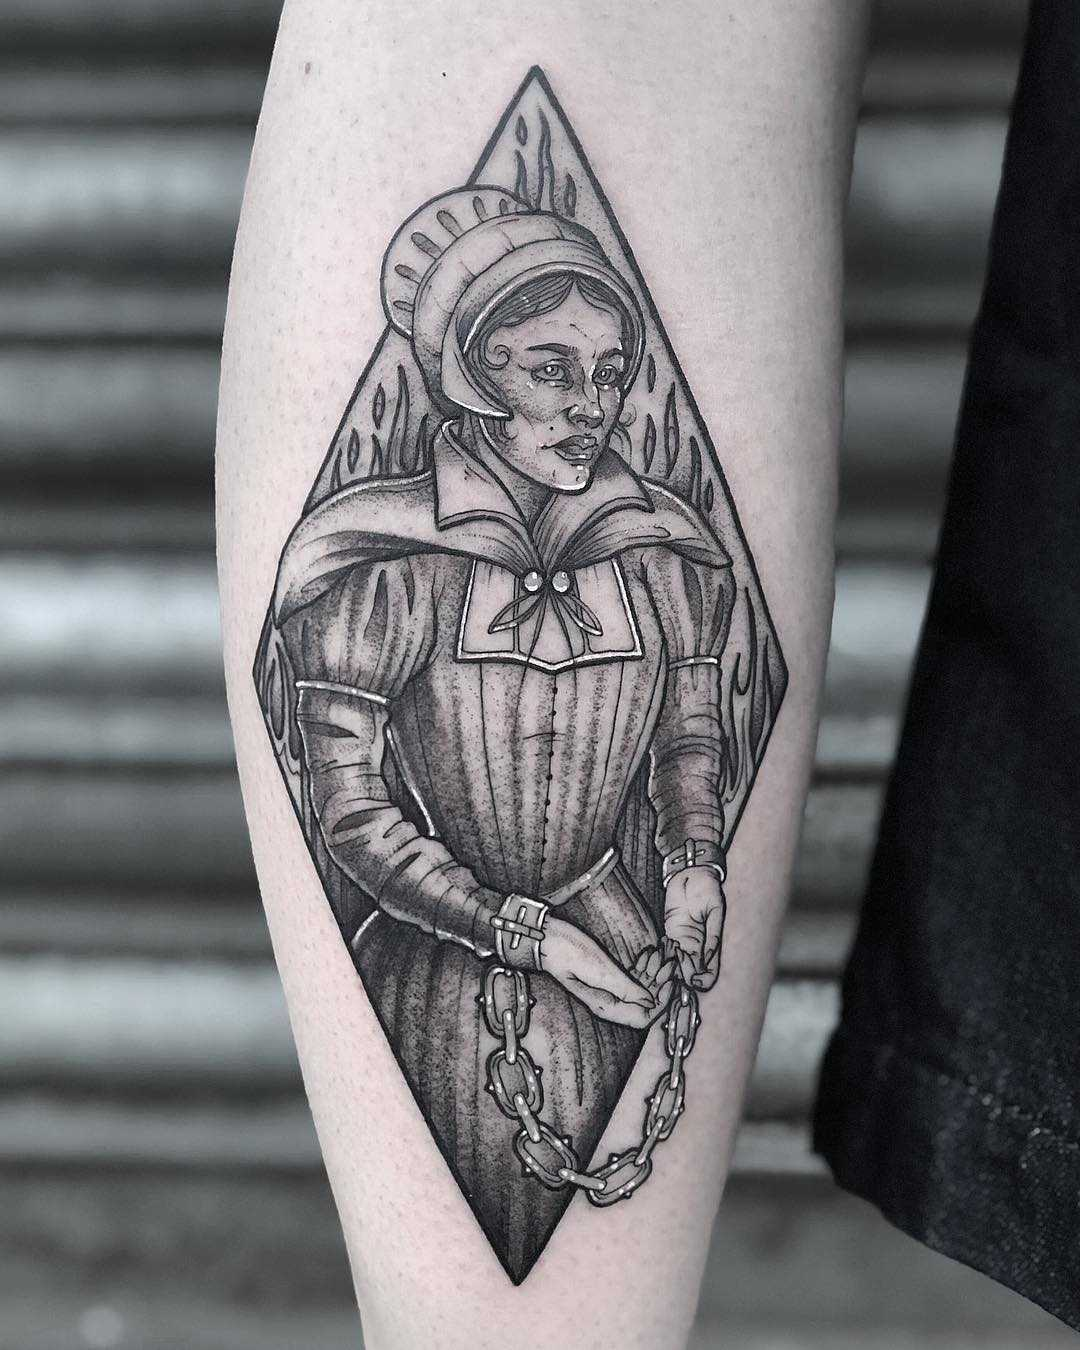 Pendle witch tattoo by Lozzy Bones